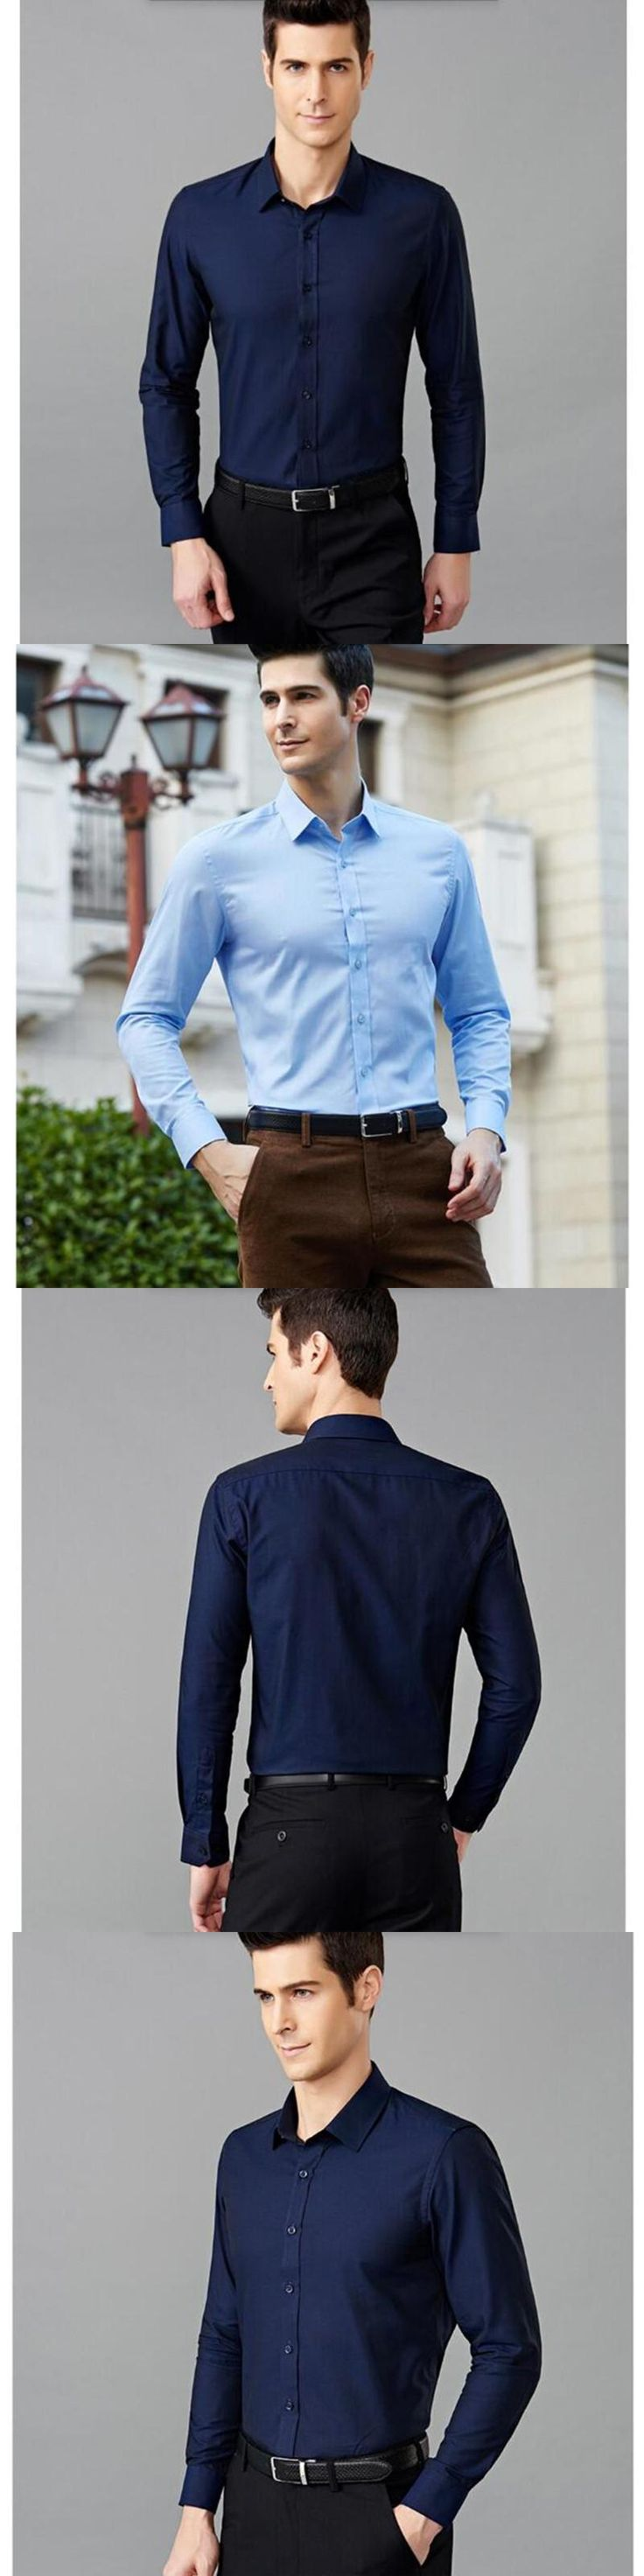 normal size Men Shirts Cheap Long Sleeve Casual Shirts custom make Luxury Quality China make Solid Color Men Clothes